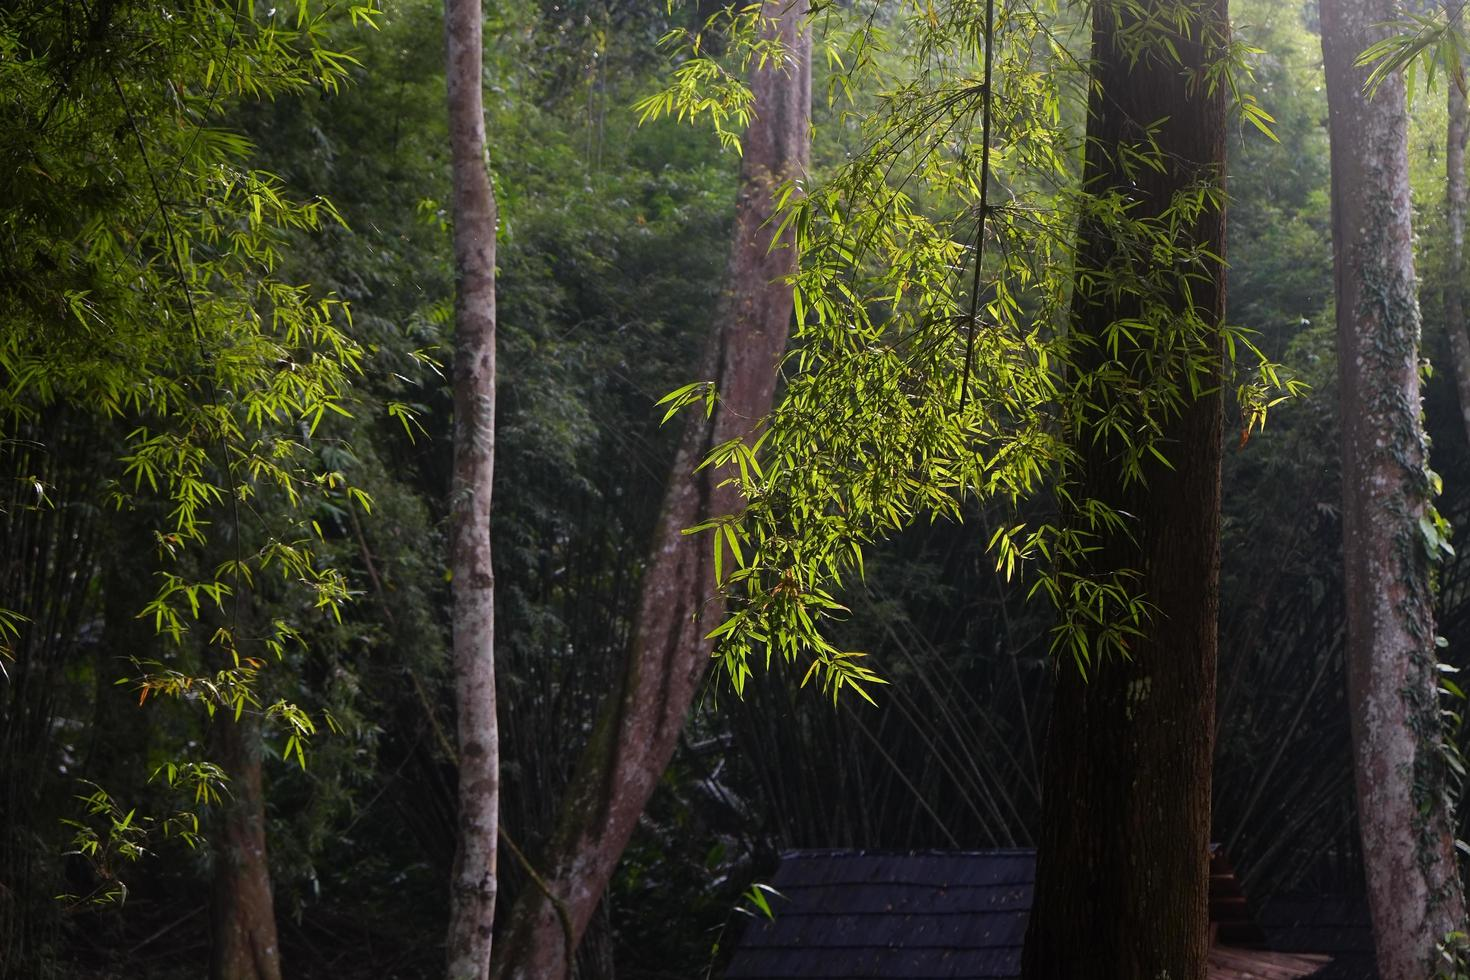 Morning sunlight in the tropical forest photo